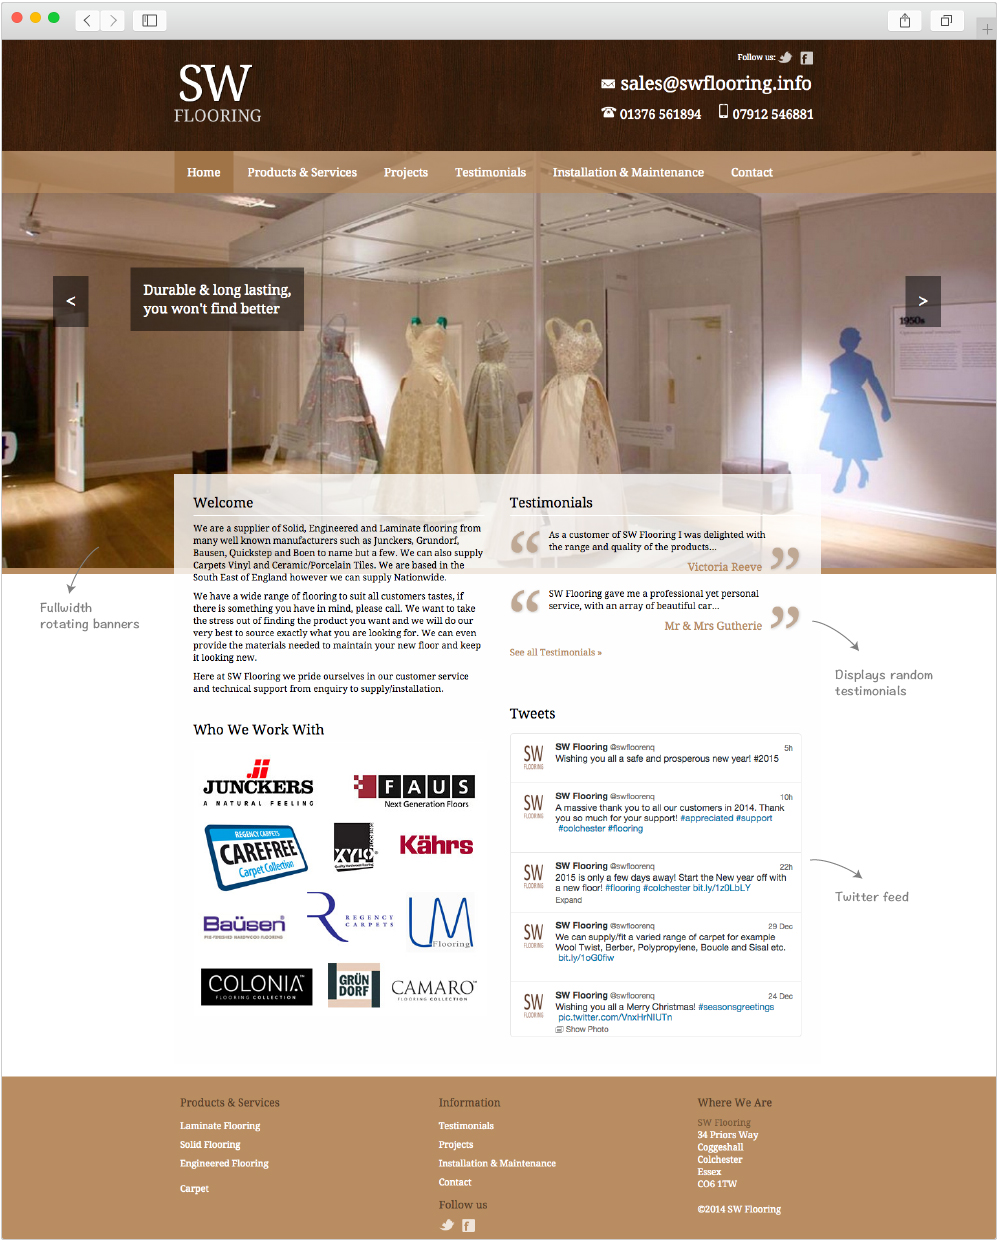 SW Flooring home page design by Studio Link 11